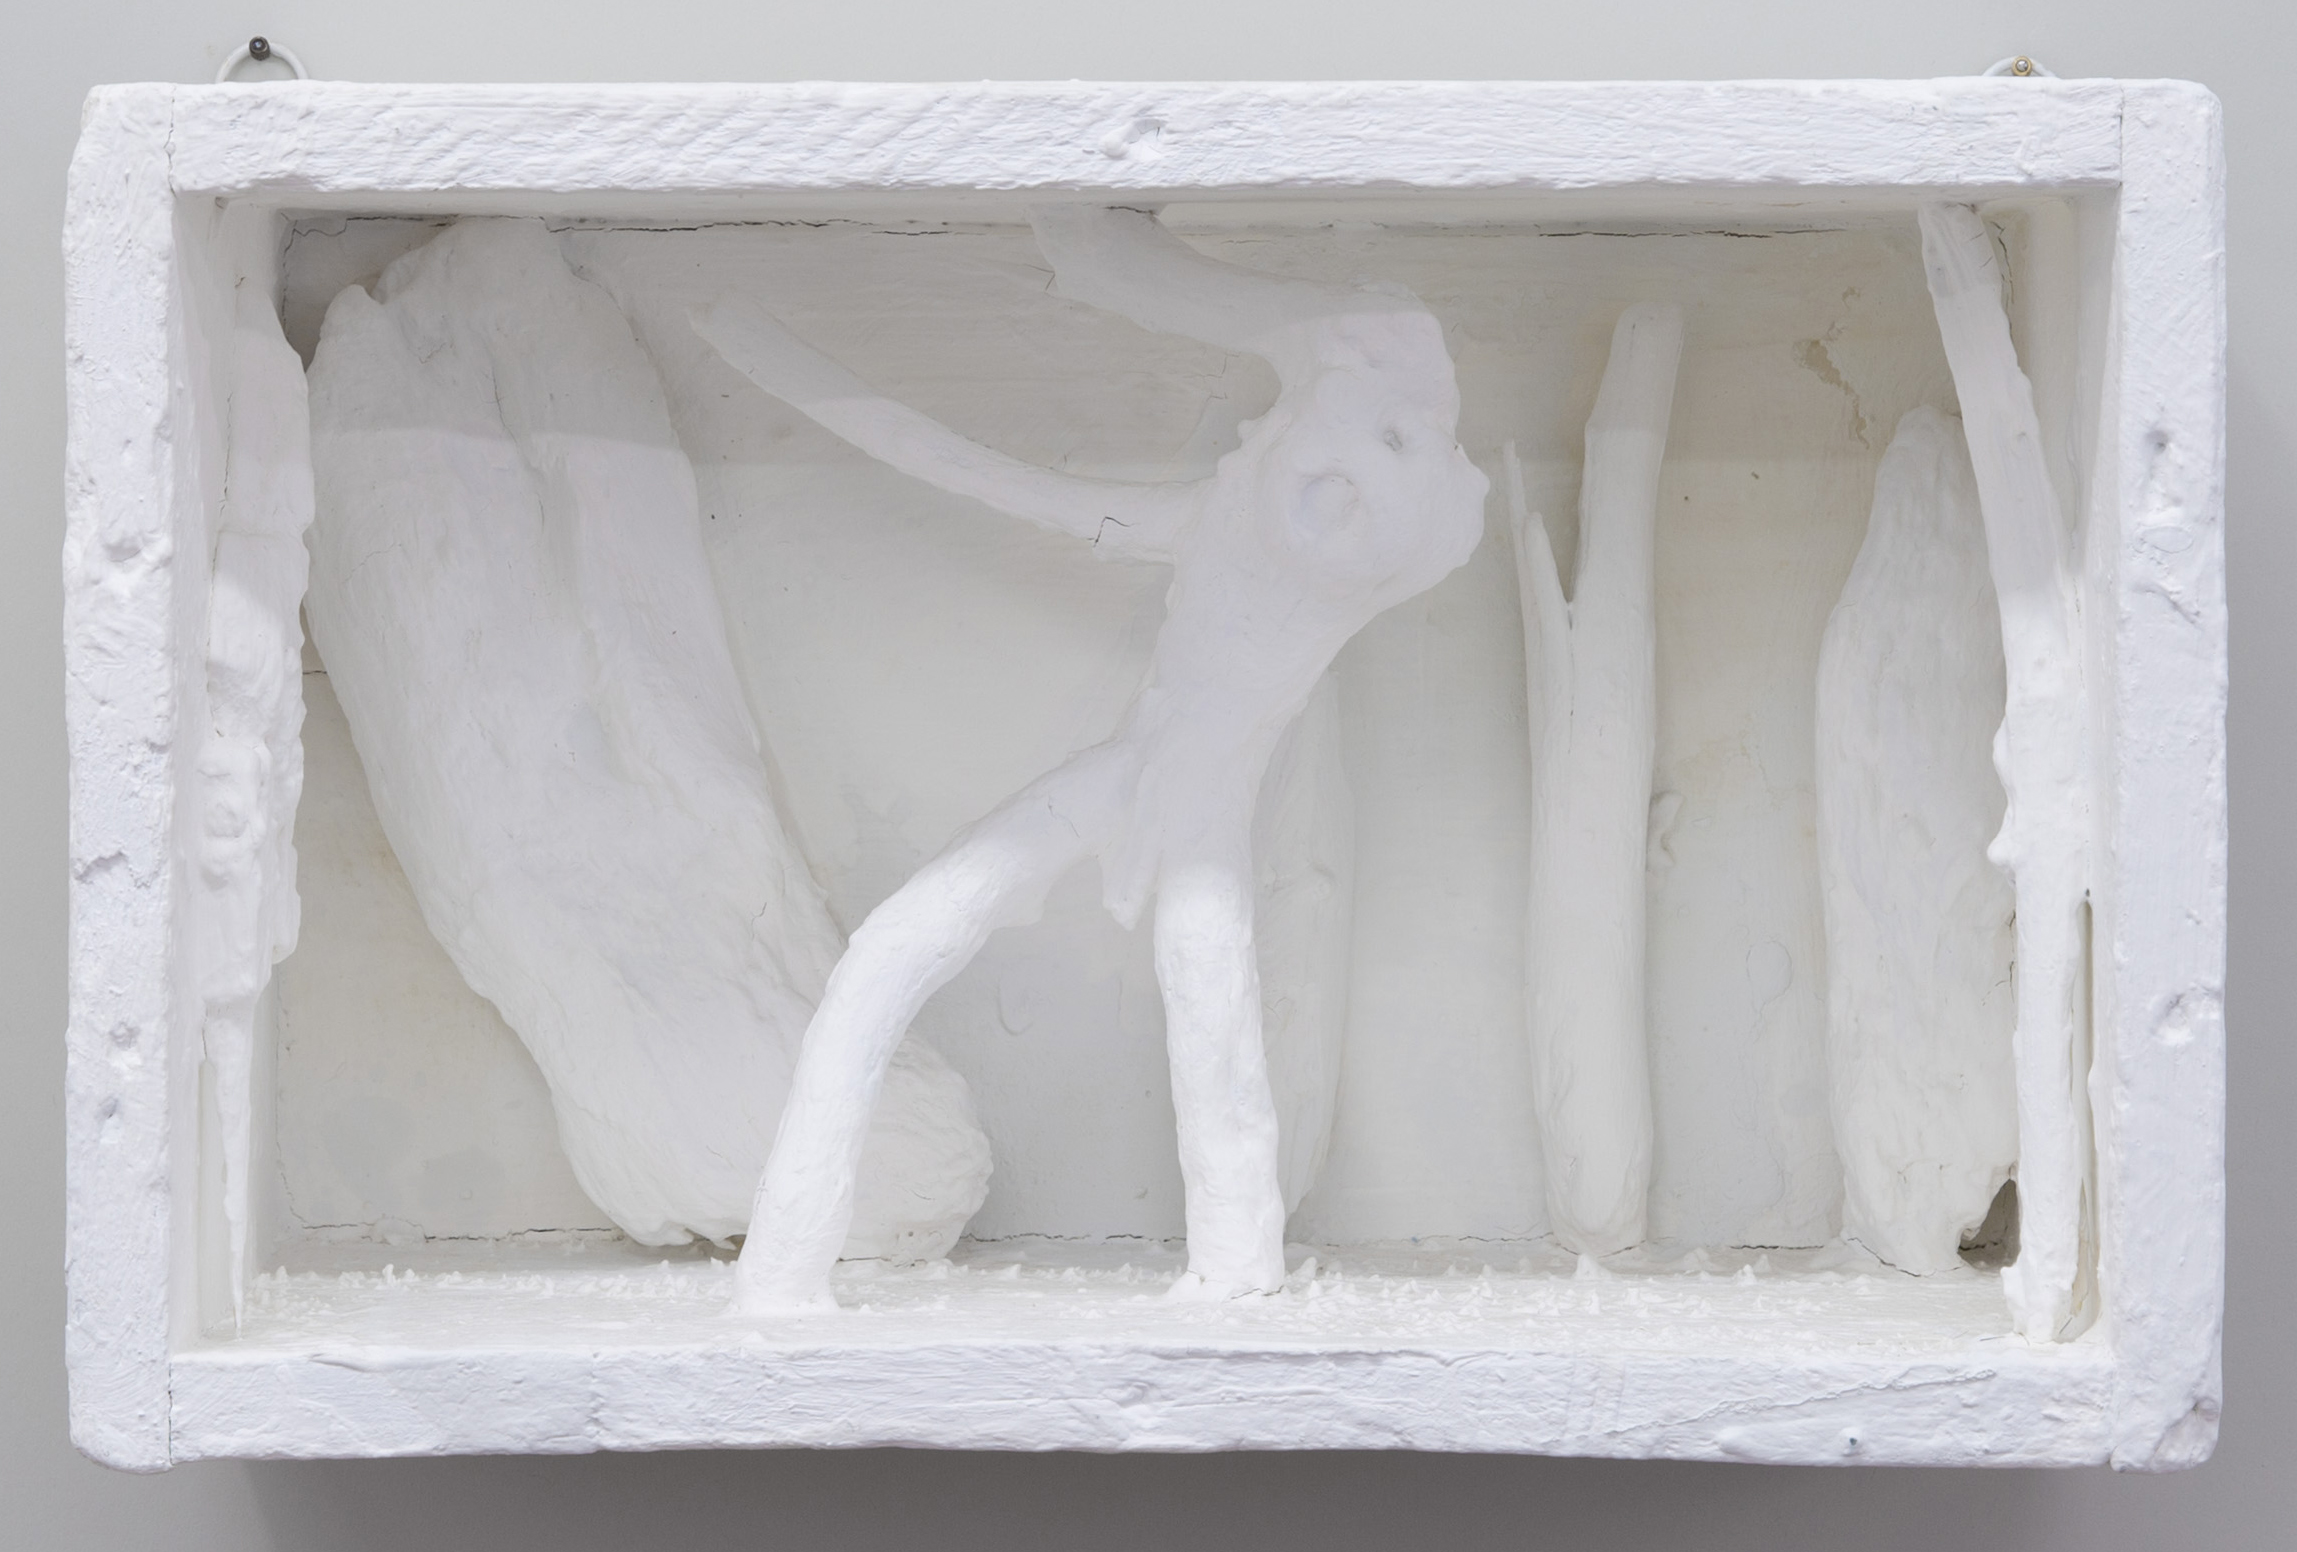 Untitled , 2012 painted wood and various materials 8 1⁄2 x 13 1⁄2 x 6 3⁄4 in